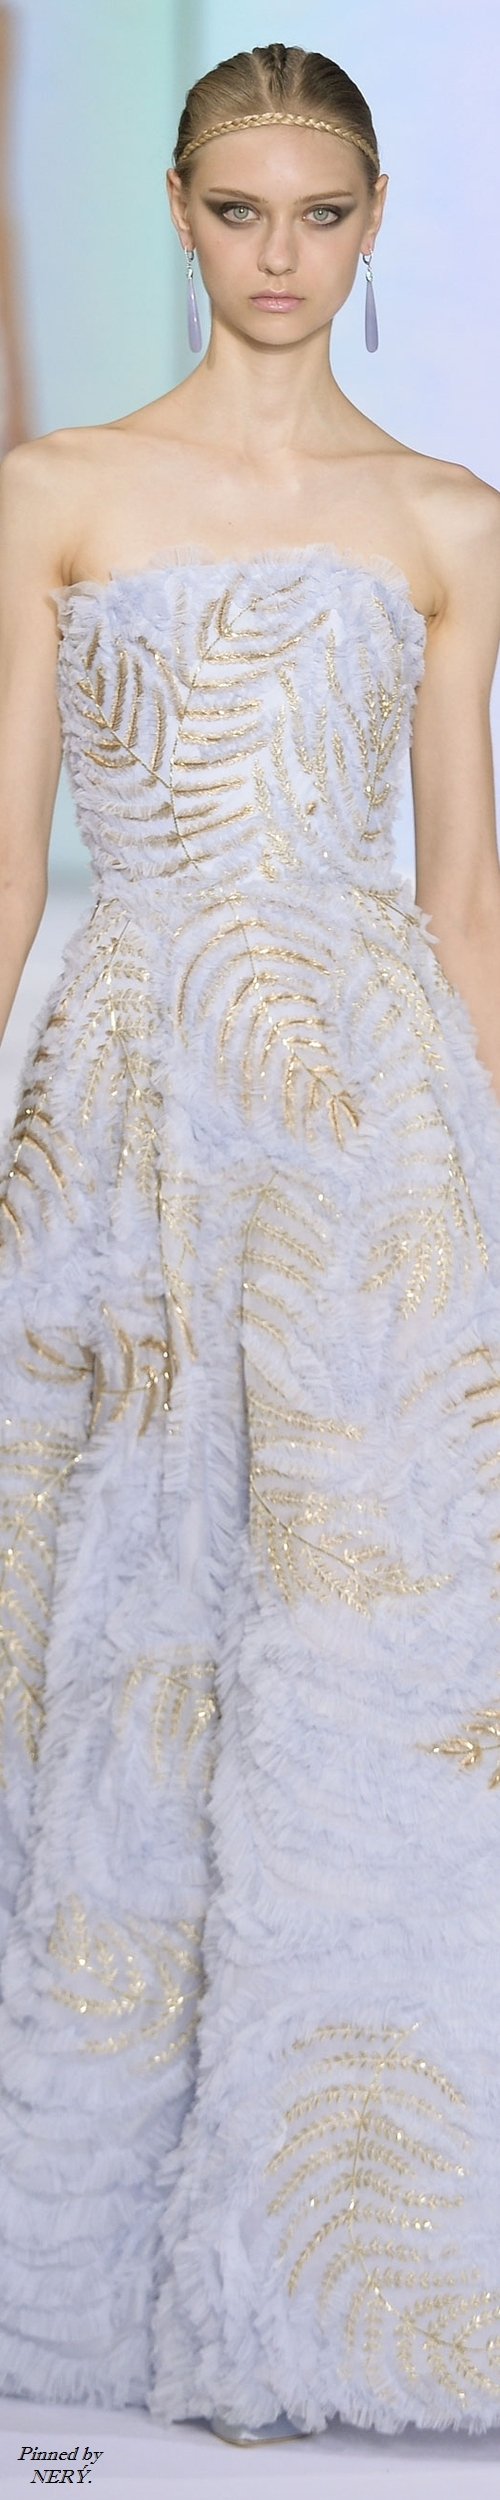 Ralph & Russo Fall-Winter 2016/2017 Couture